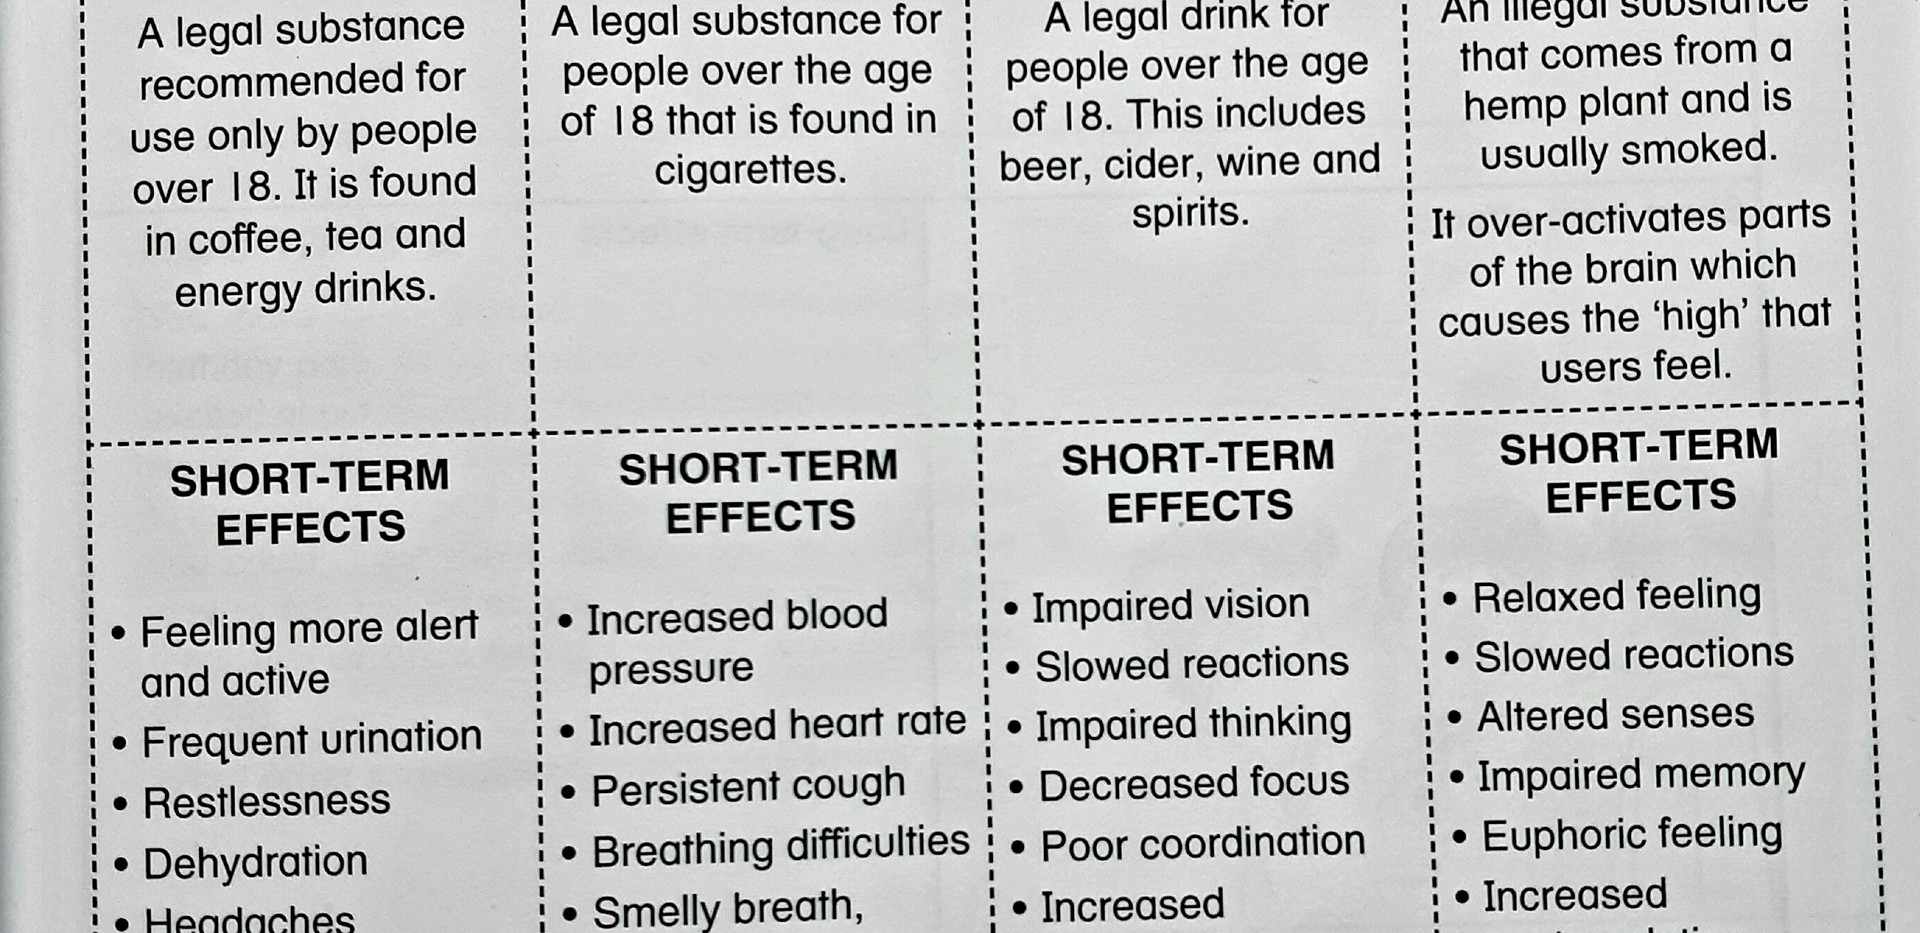 Alcohol and other drugs 1.jpg